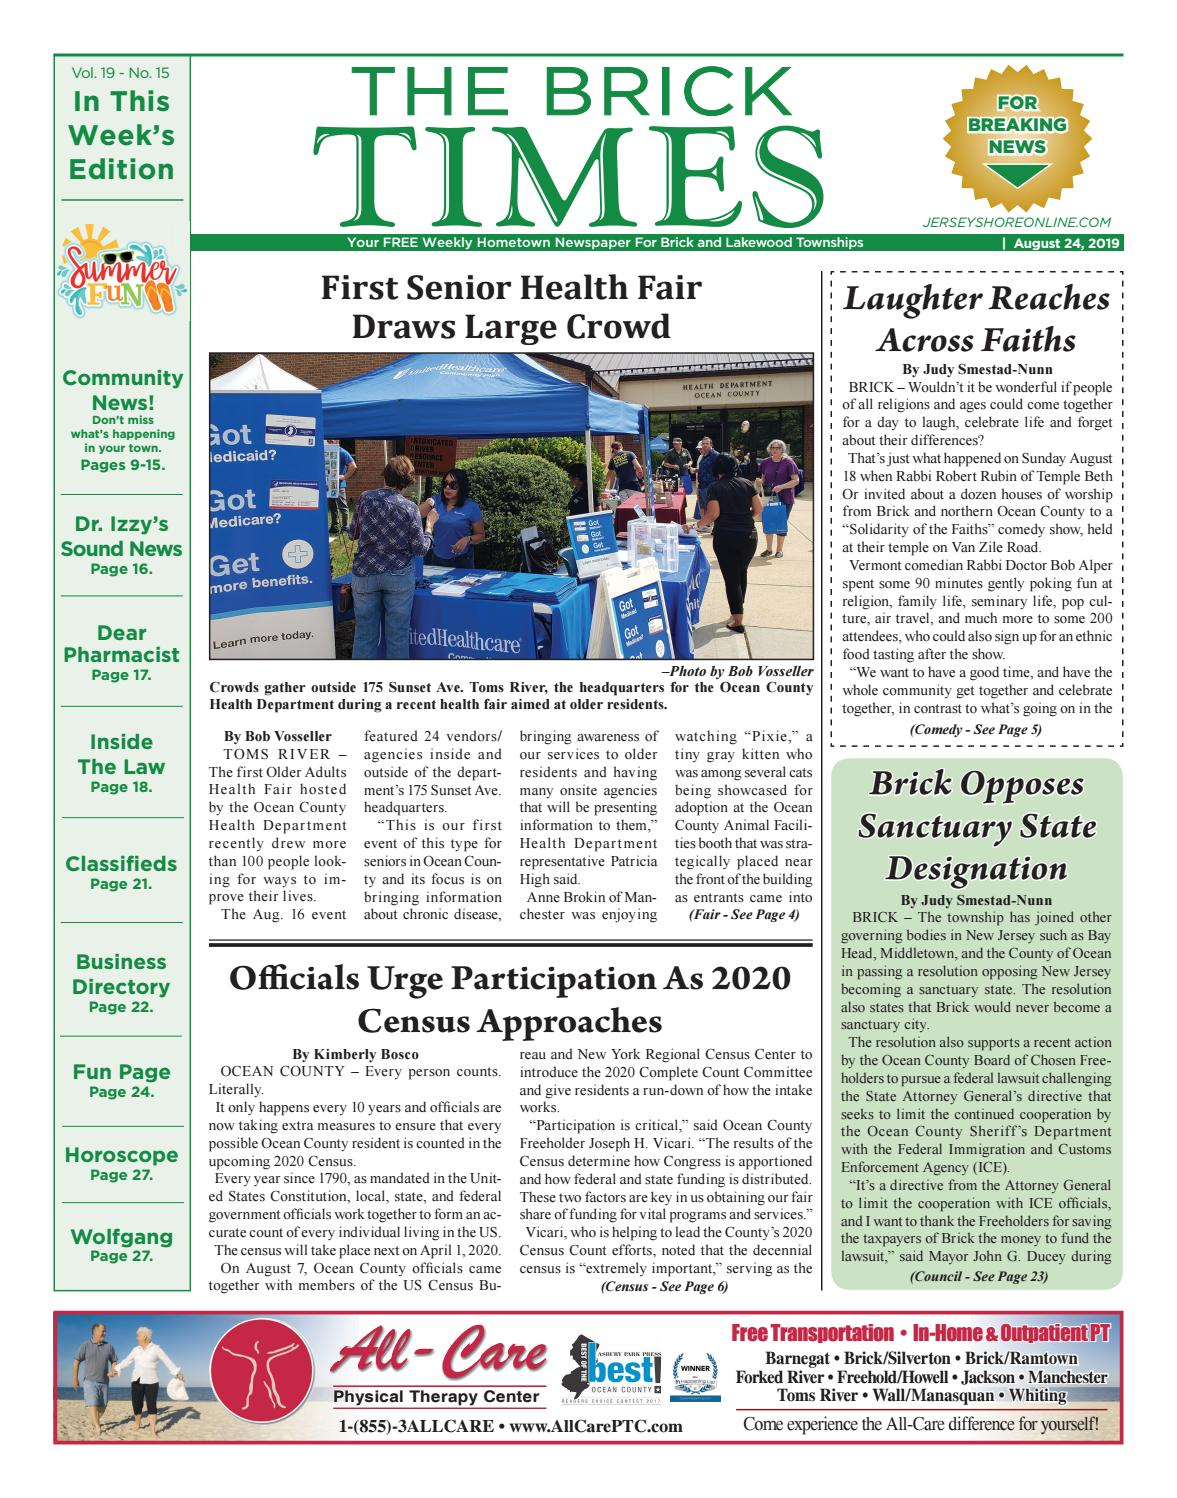 2019 08 24 The Brick Times By Micromedia Publications Jersey Shore Online Issuu